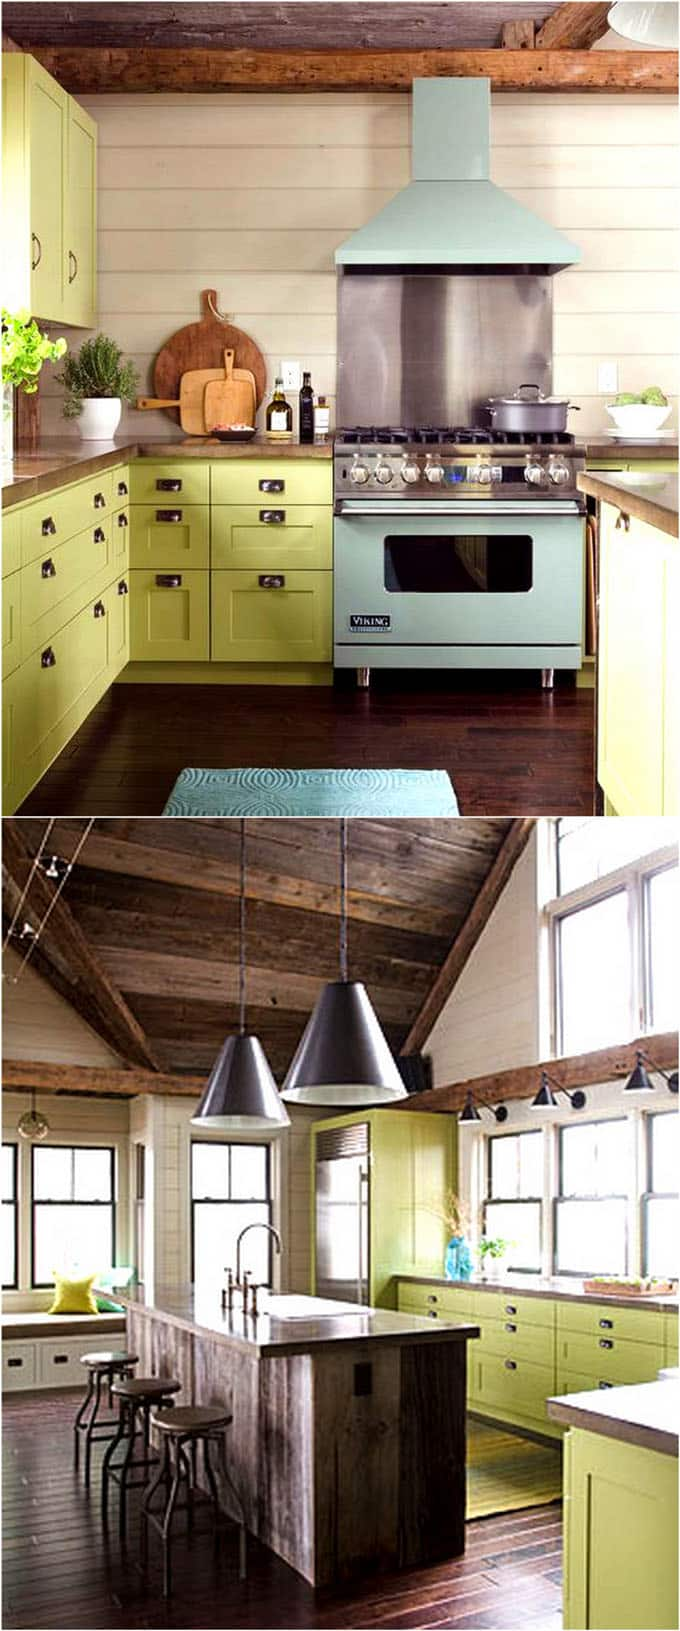 25-beautiful-paint-colors-for-kitchen-cabinets-apieceofrainbowblog (15)